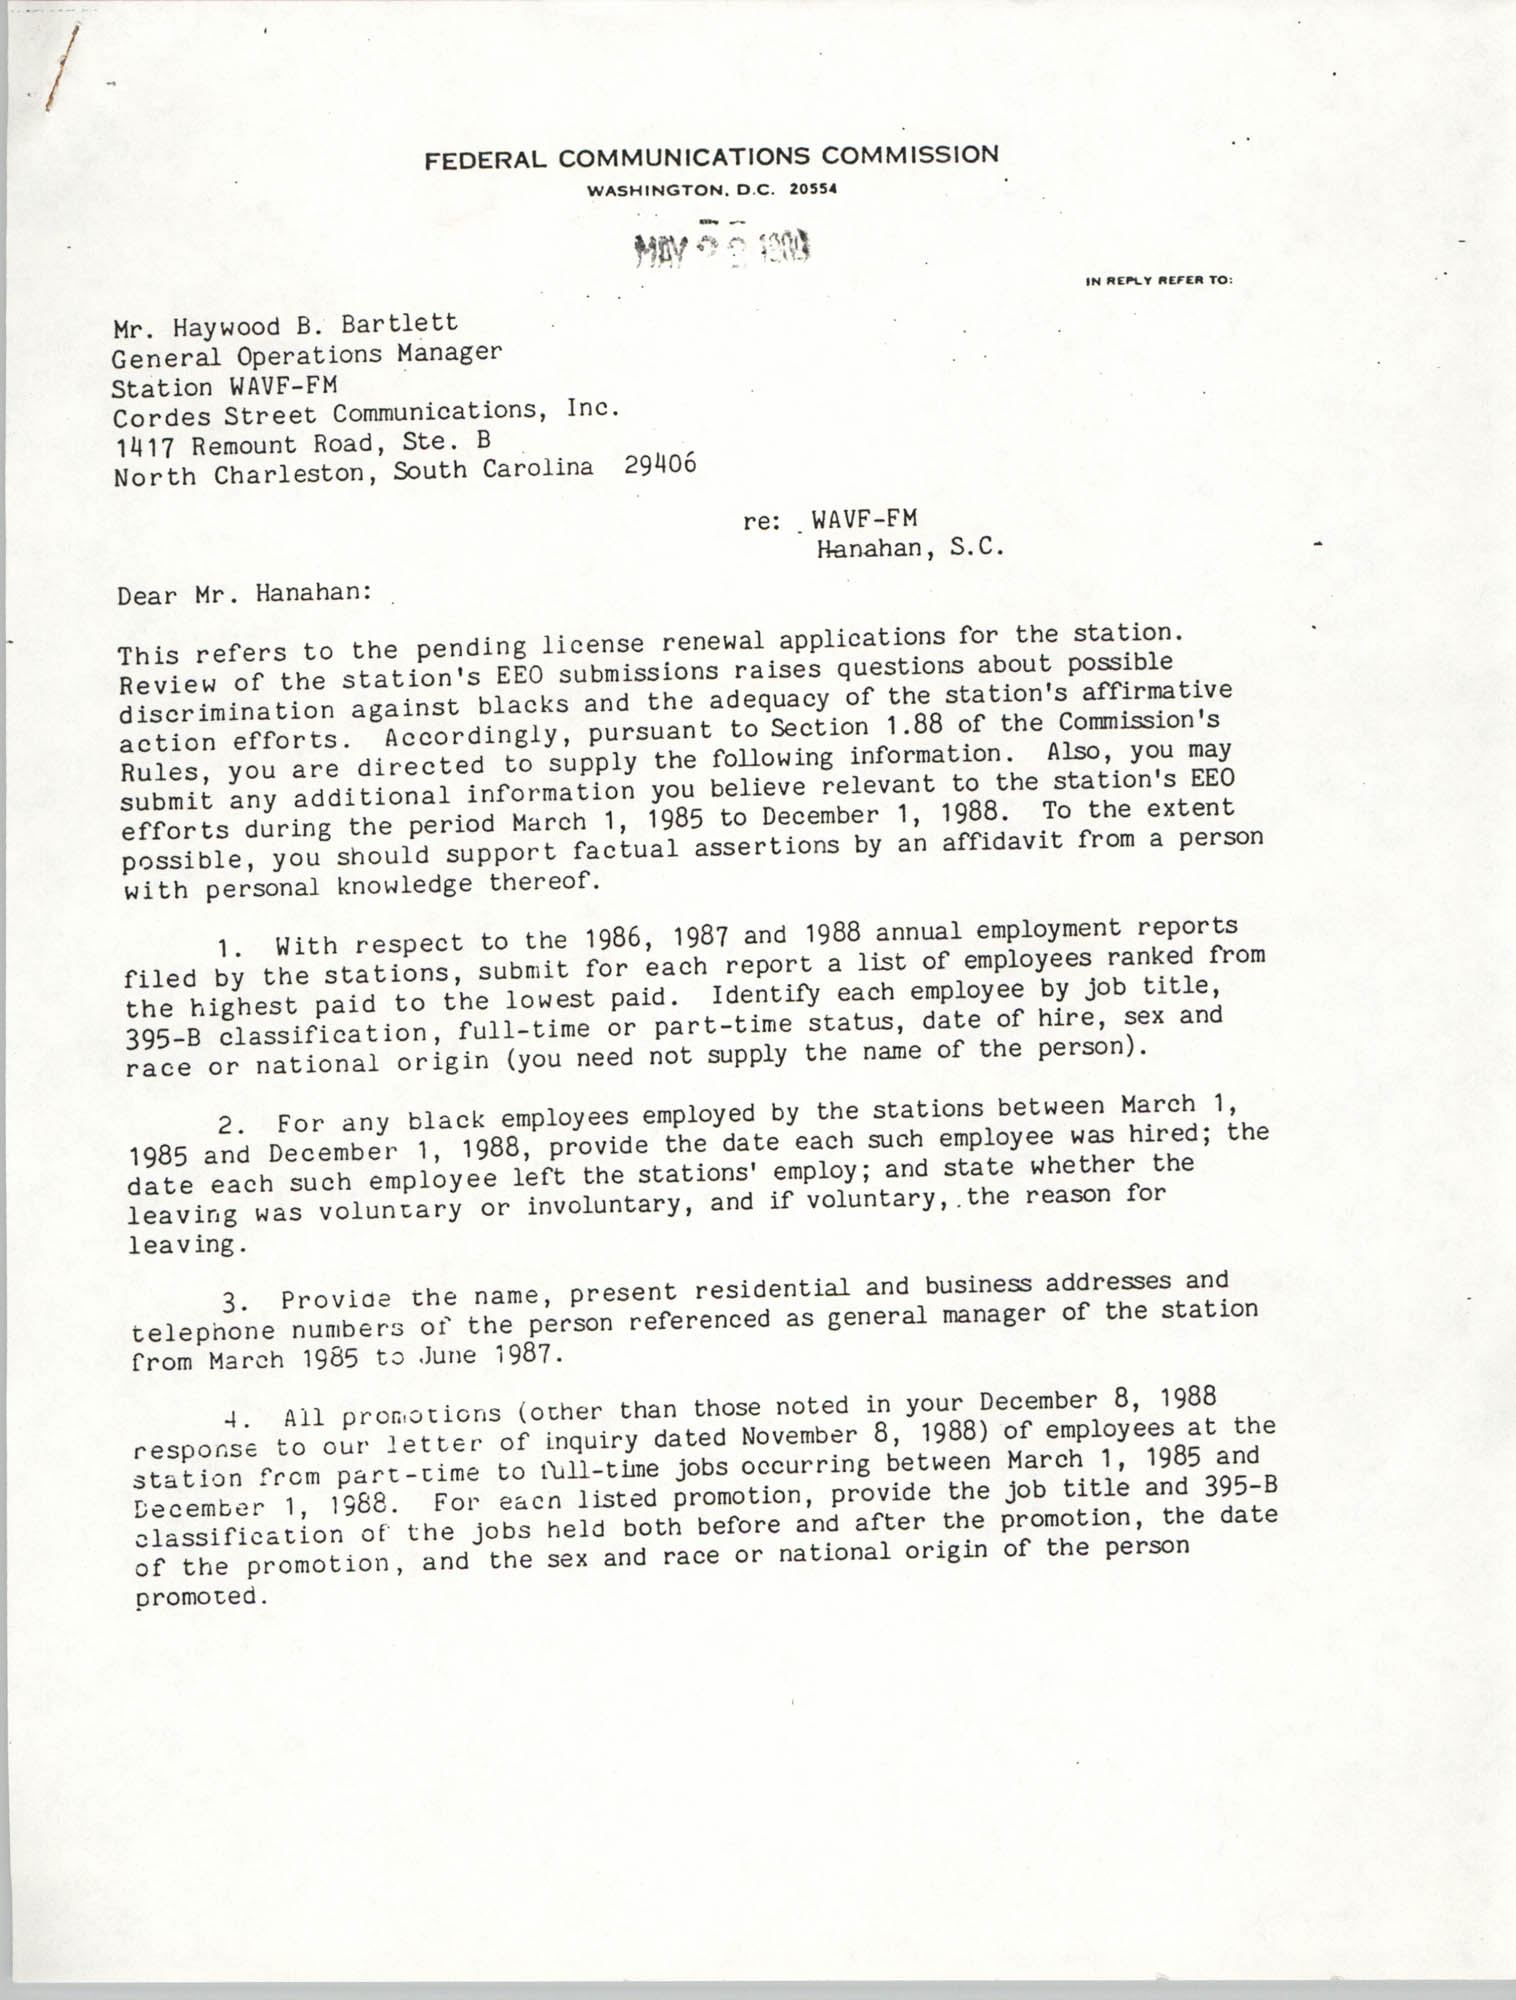 Letter from Glenn A. Wolfe to Haywood B. Bartlett, May 22, 1989